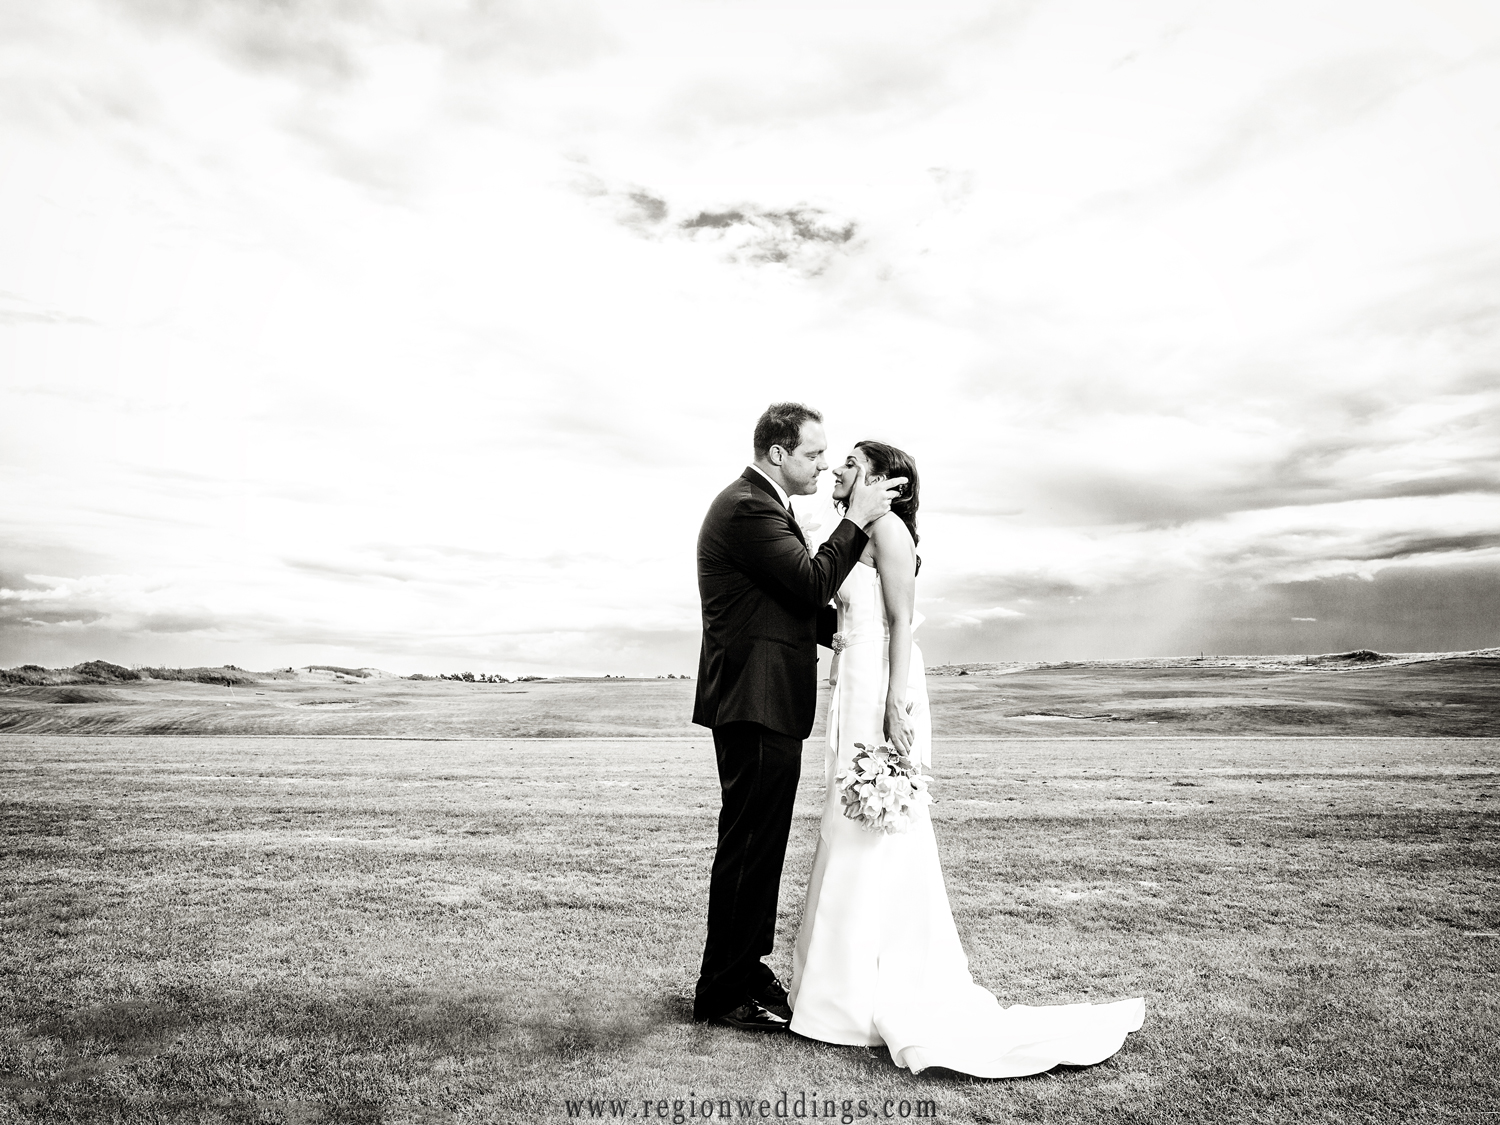 The groom is about to kiss his new bride in this romantic black and white wedding photo.